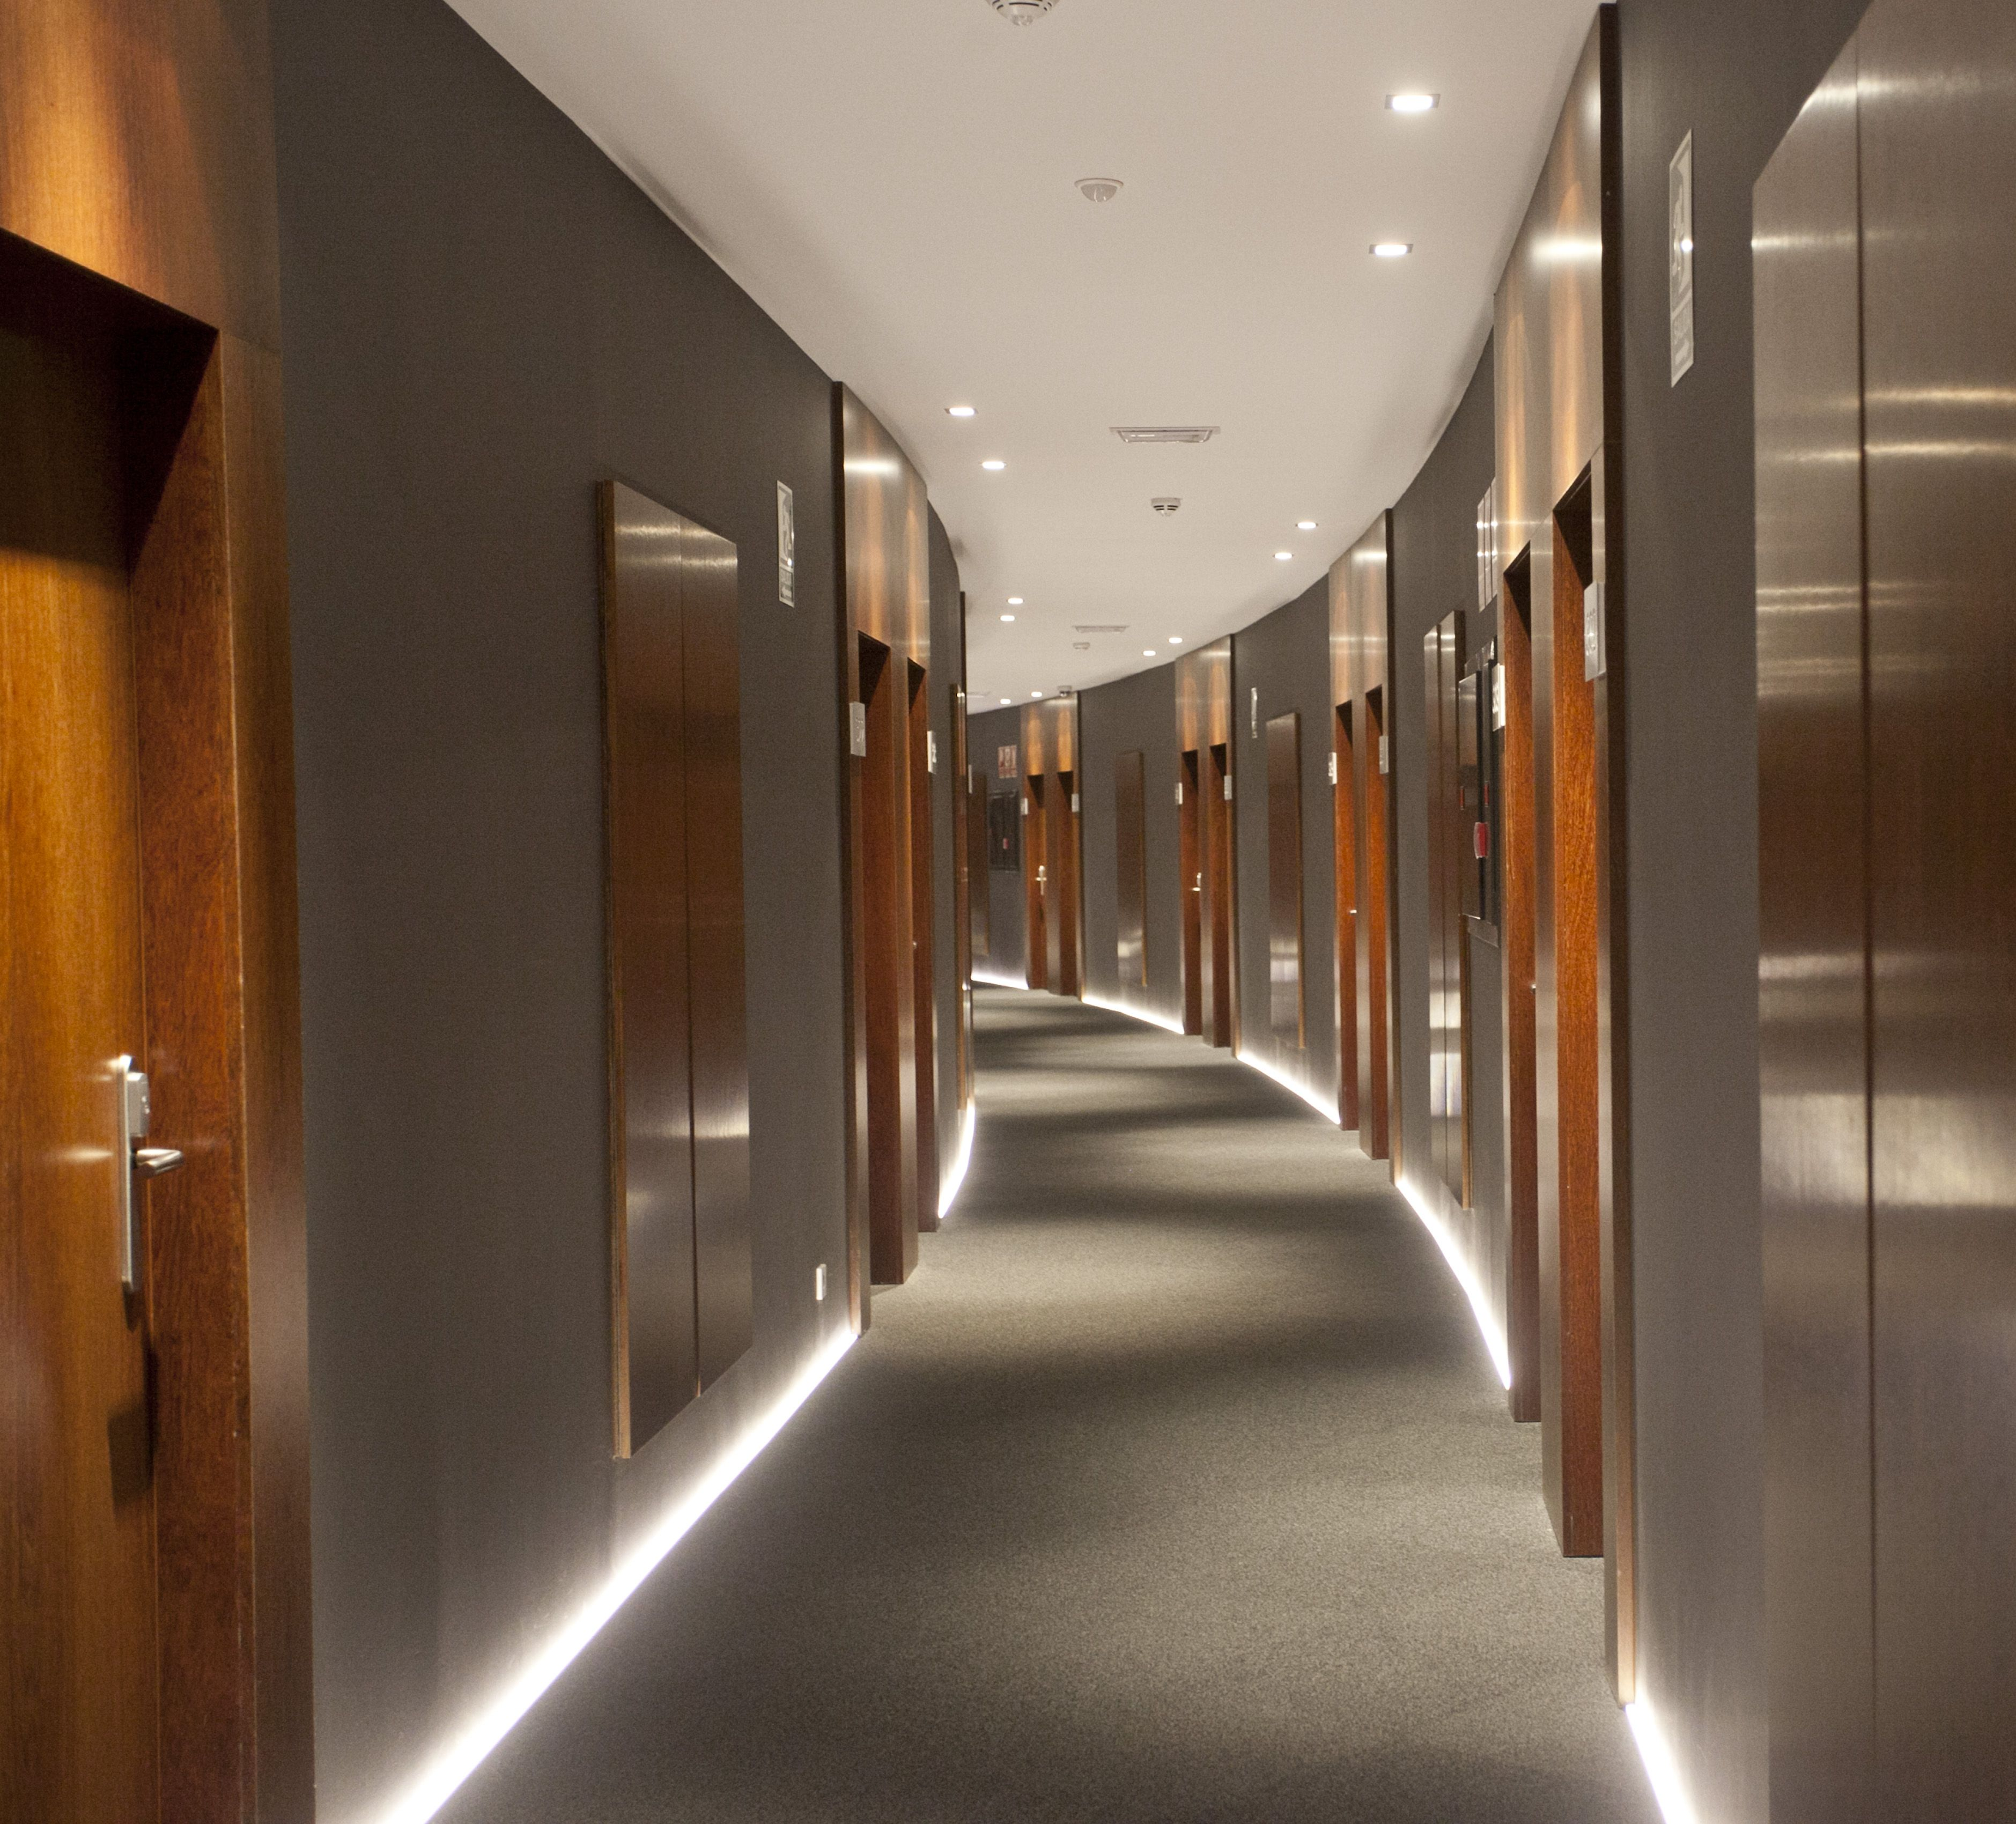 Corridor hotel carr s marineda a coru a galicia for Architecture interior design photos